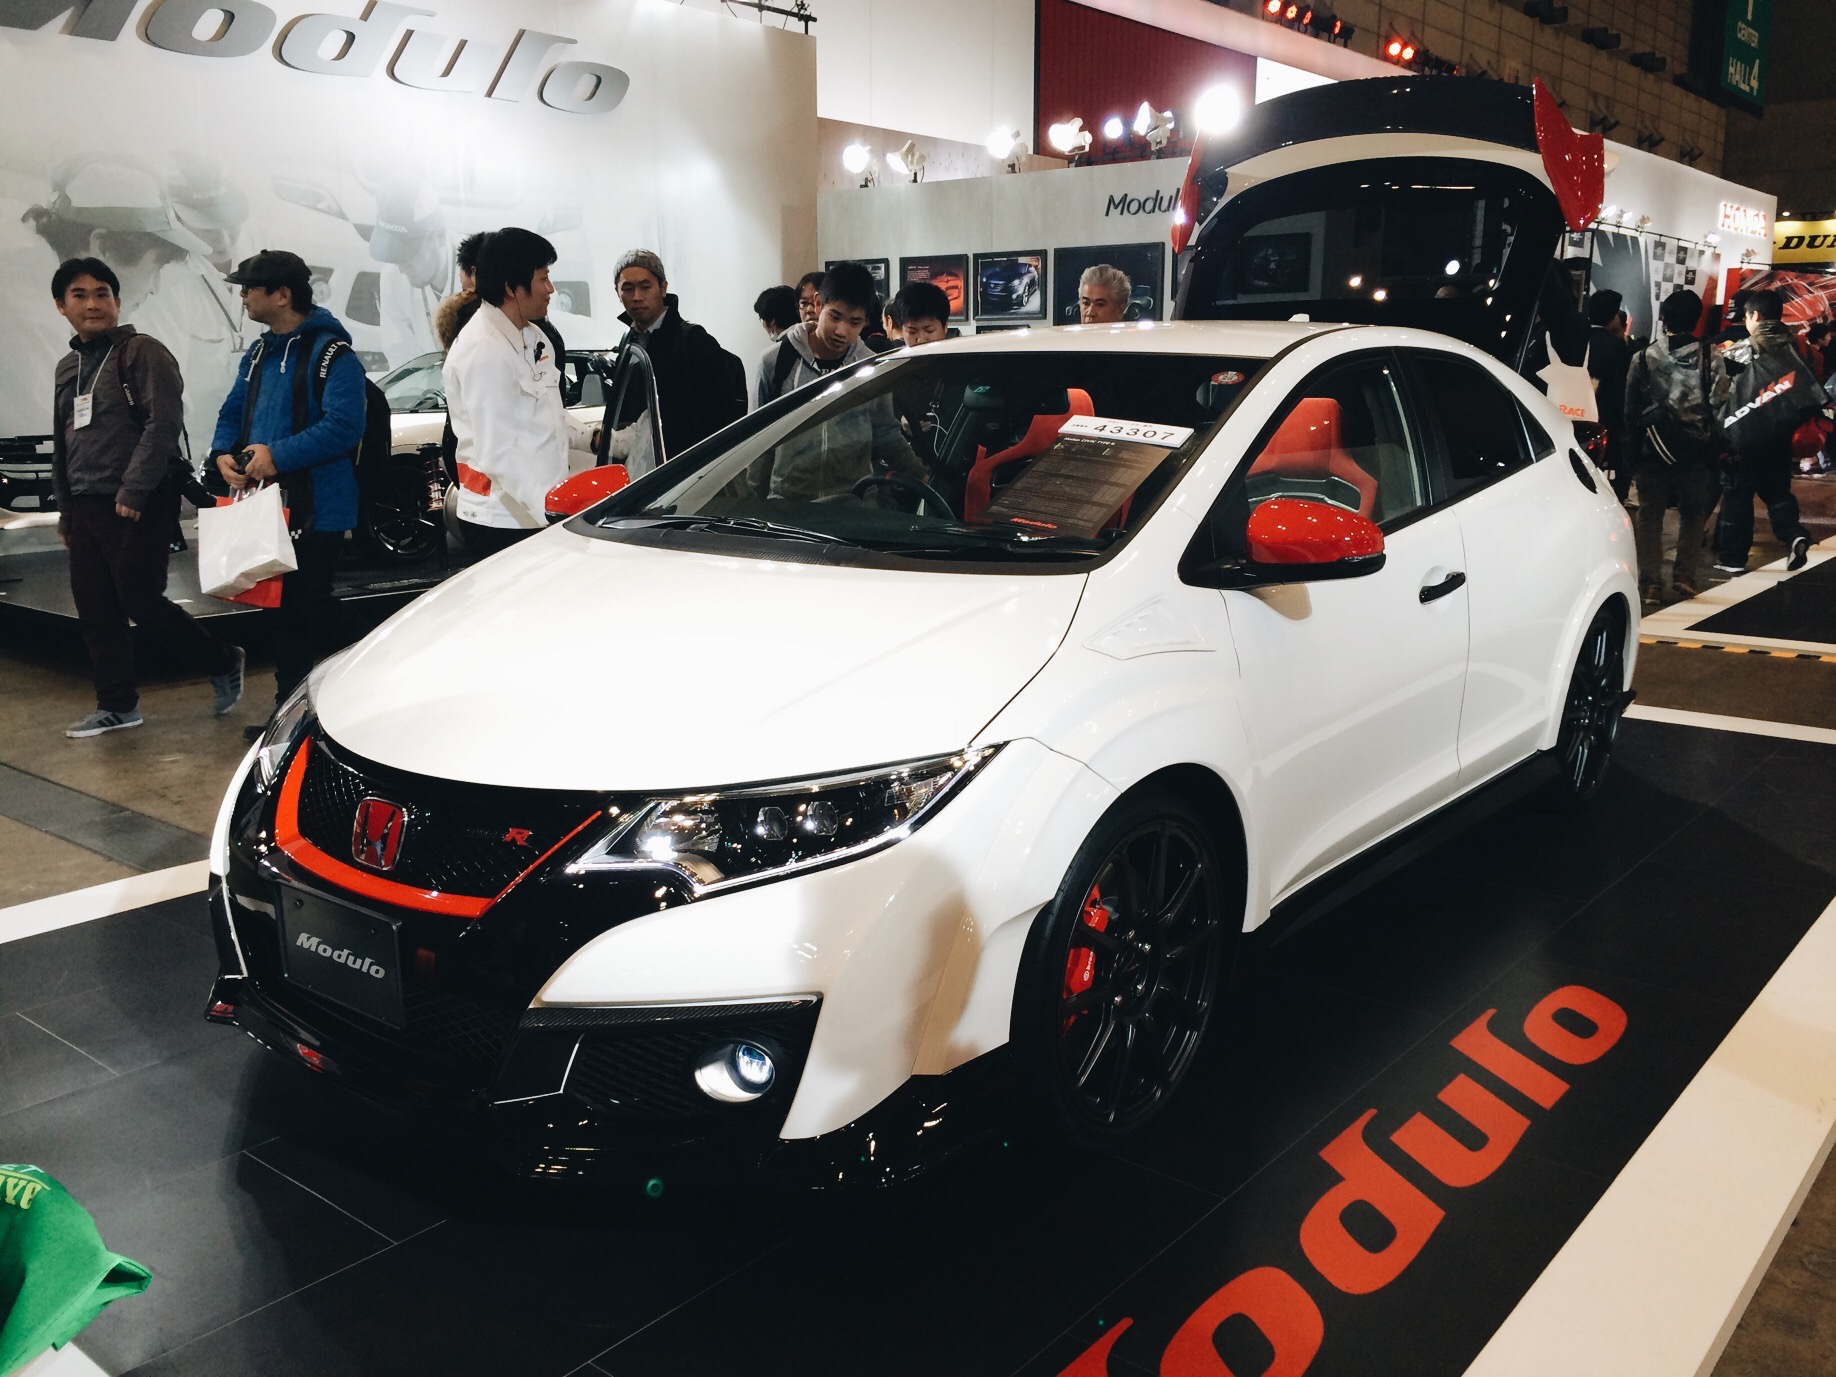 I hope we get one of these in the states, the new Honda Civic Type-R.